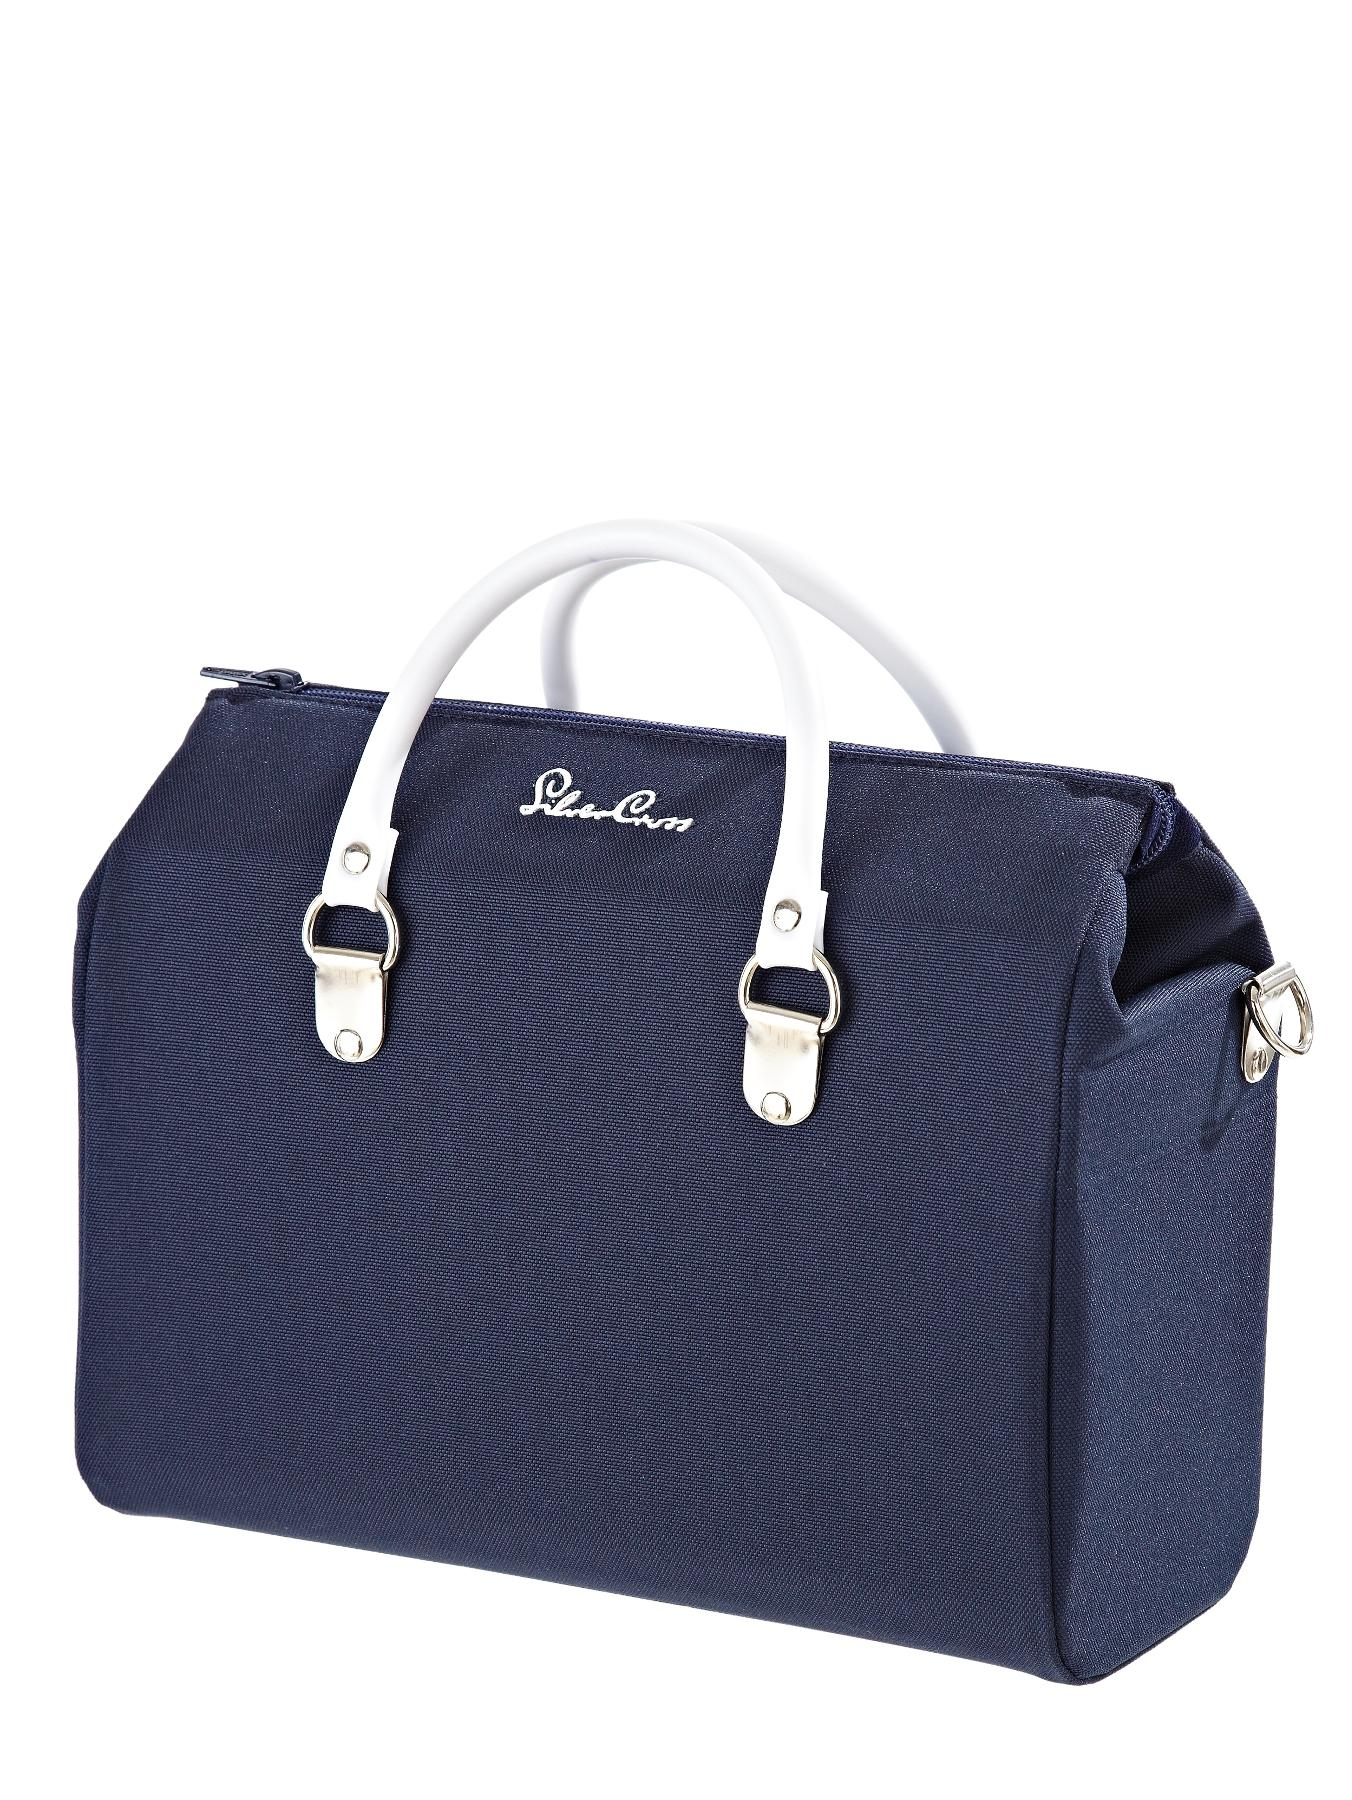 Dolls Pram Bag - Navy